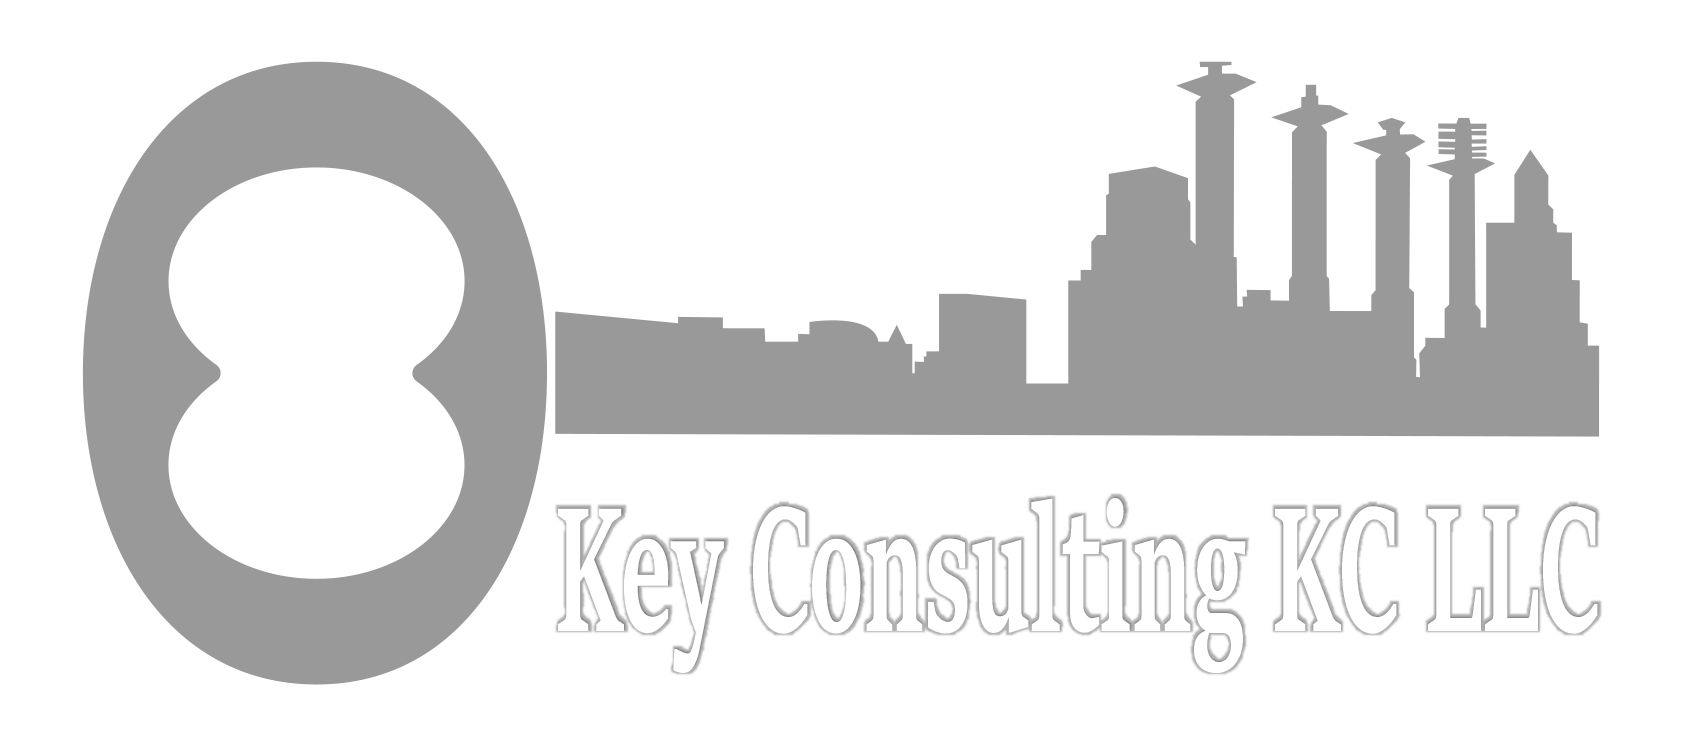 Key Consulting KC